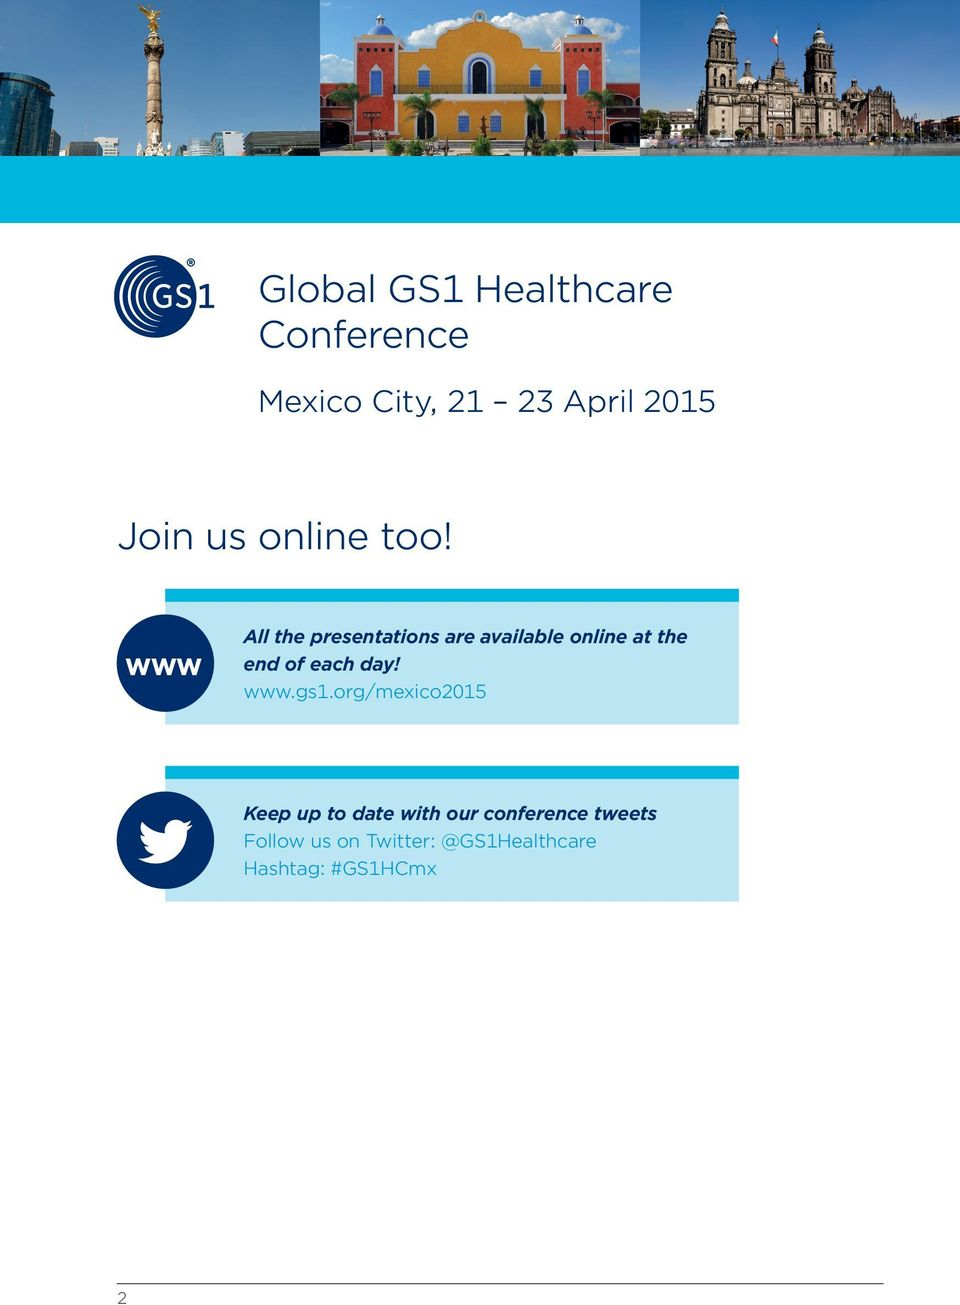 www All the presentations are available online at the end of each day! www.gs1.